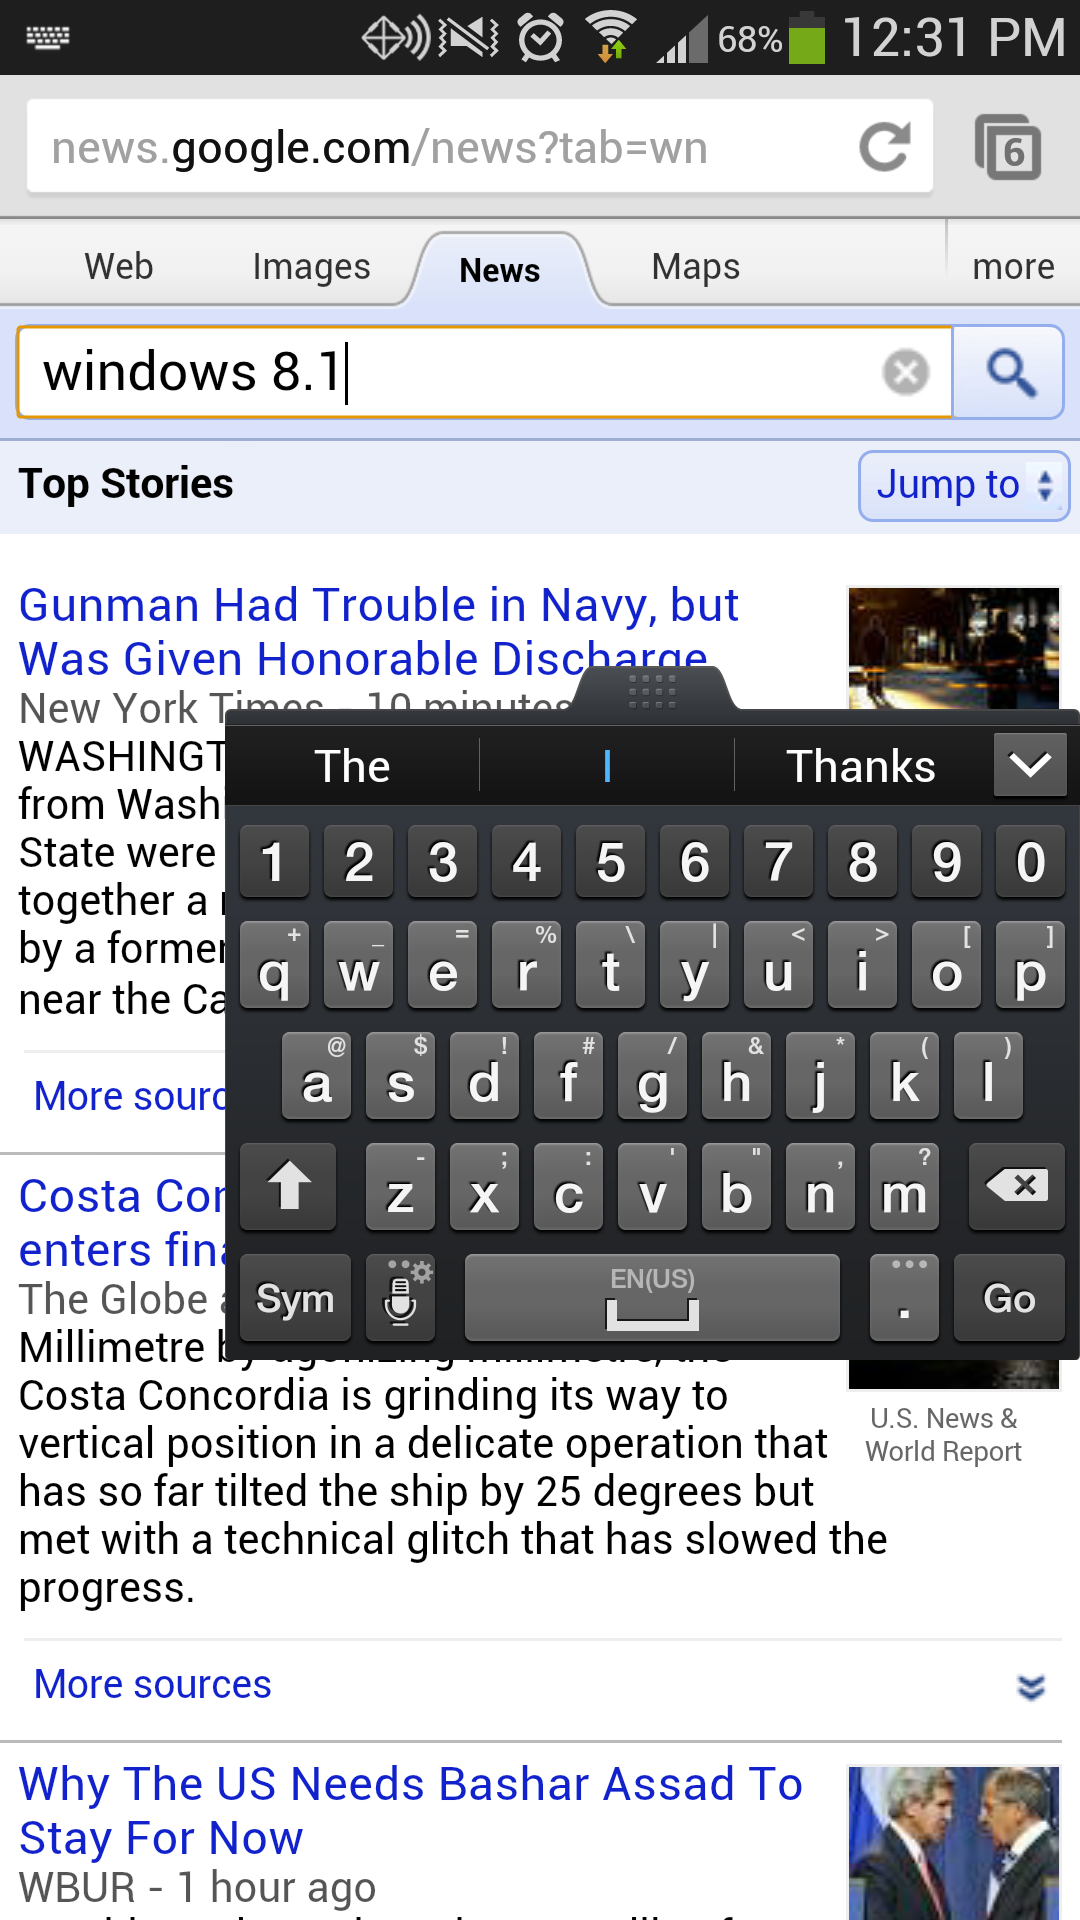 Galaxy S4 QUERTY keyboard options floating keyboard